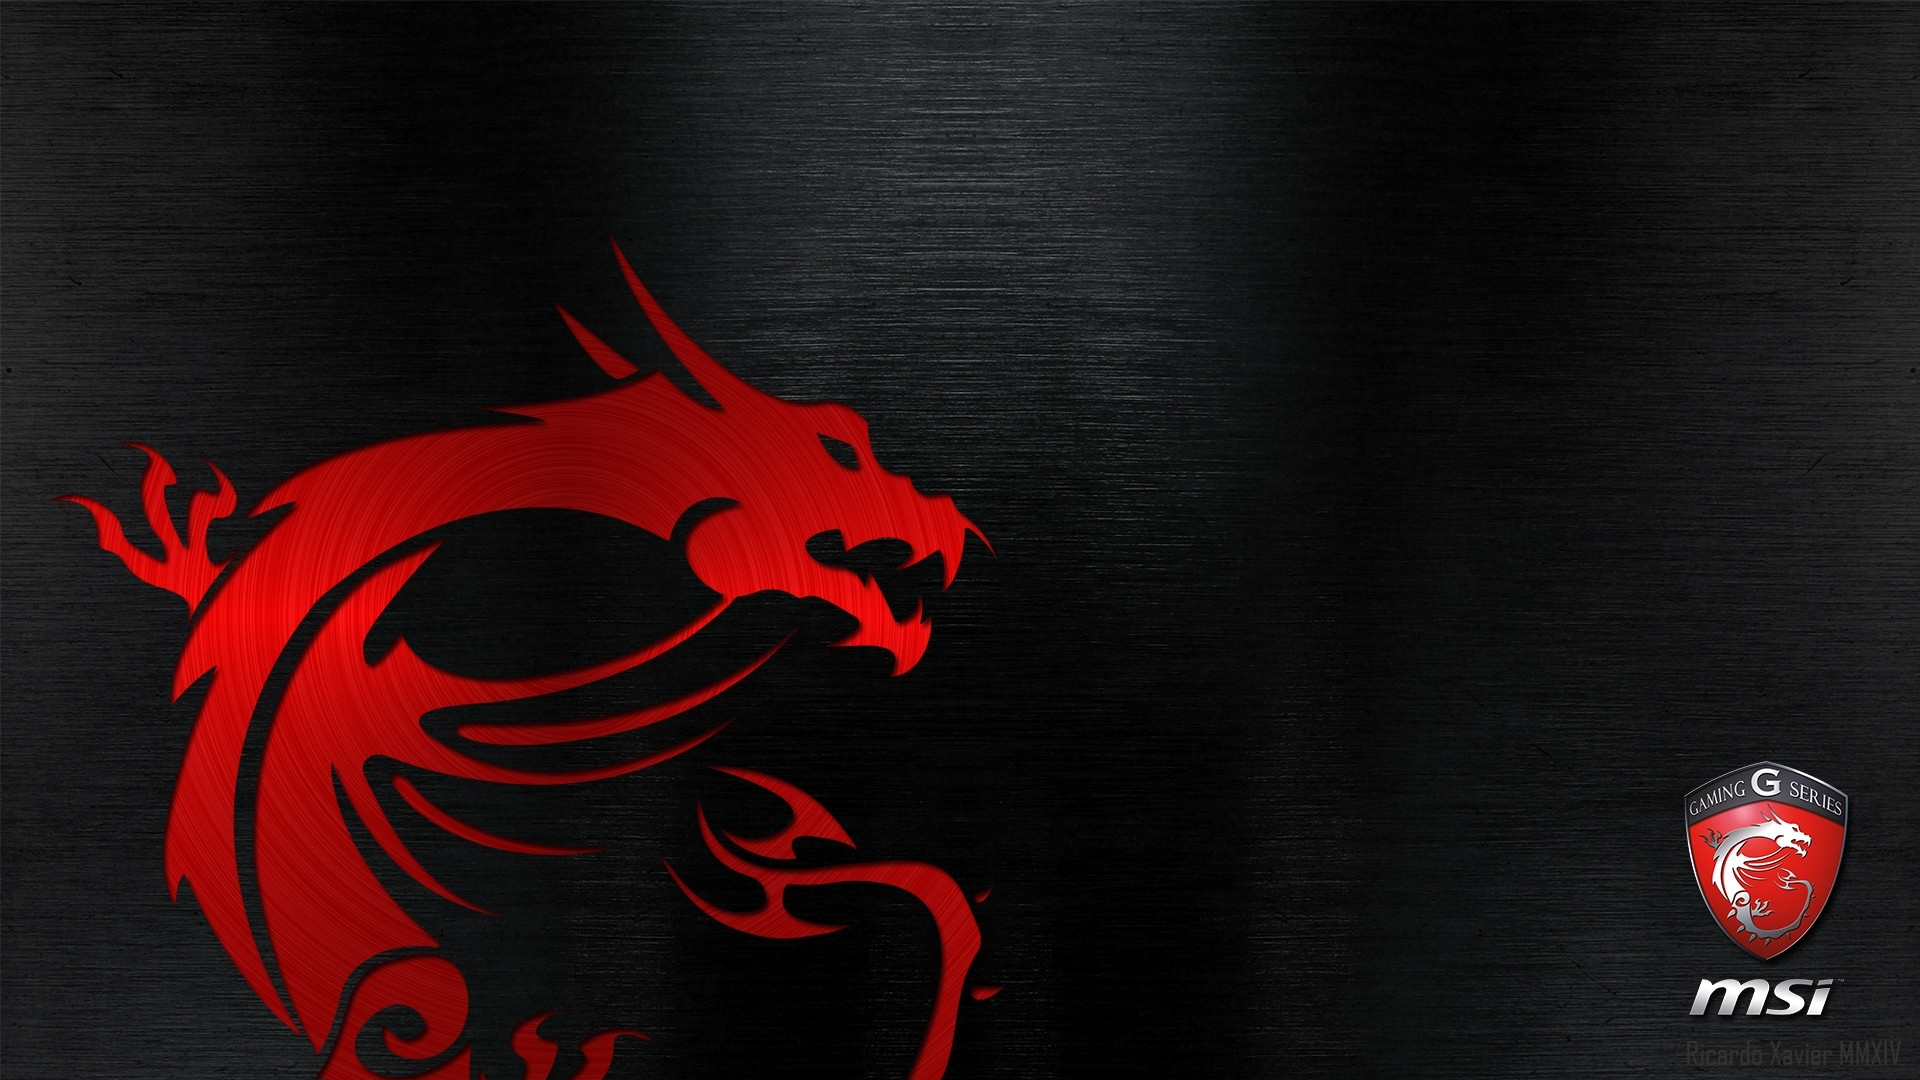 msi wallpaper hd 1920x1080 (88+ images)